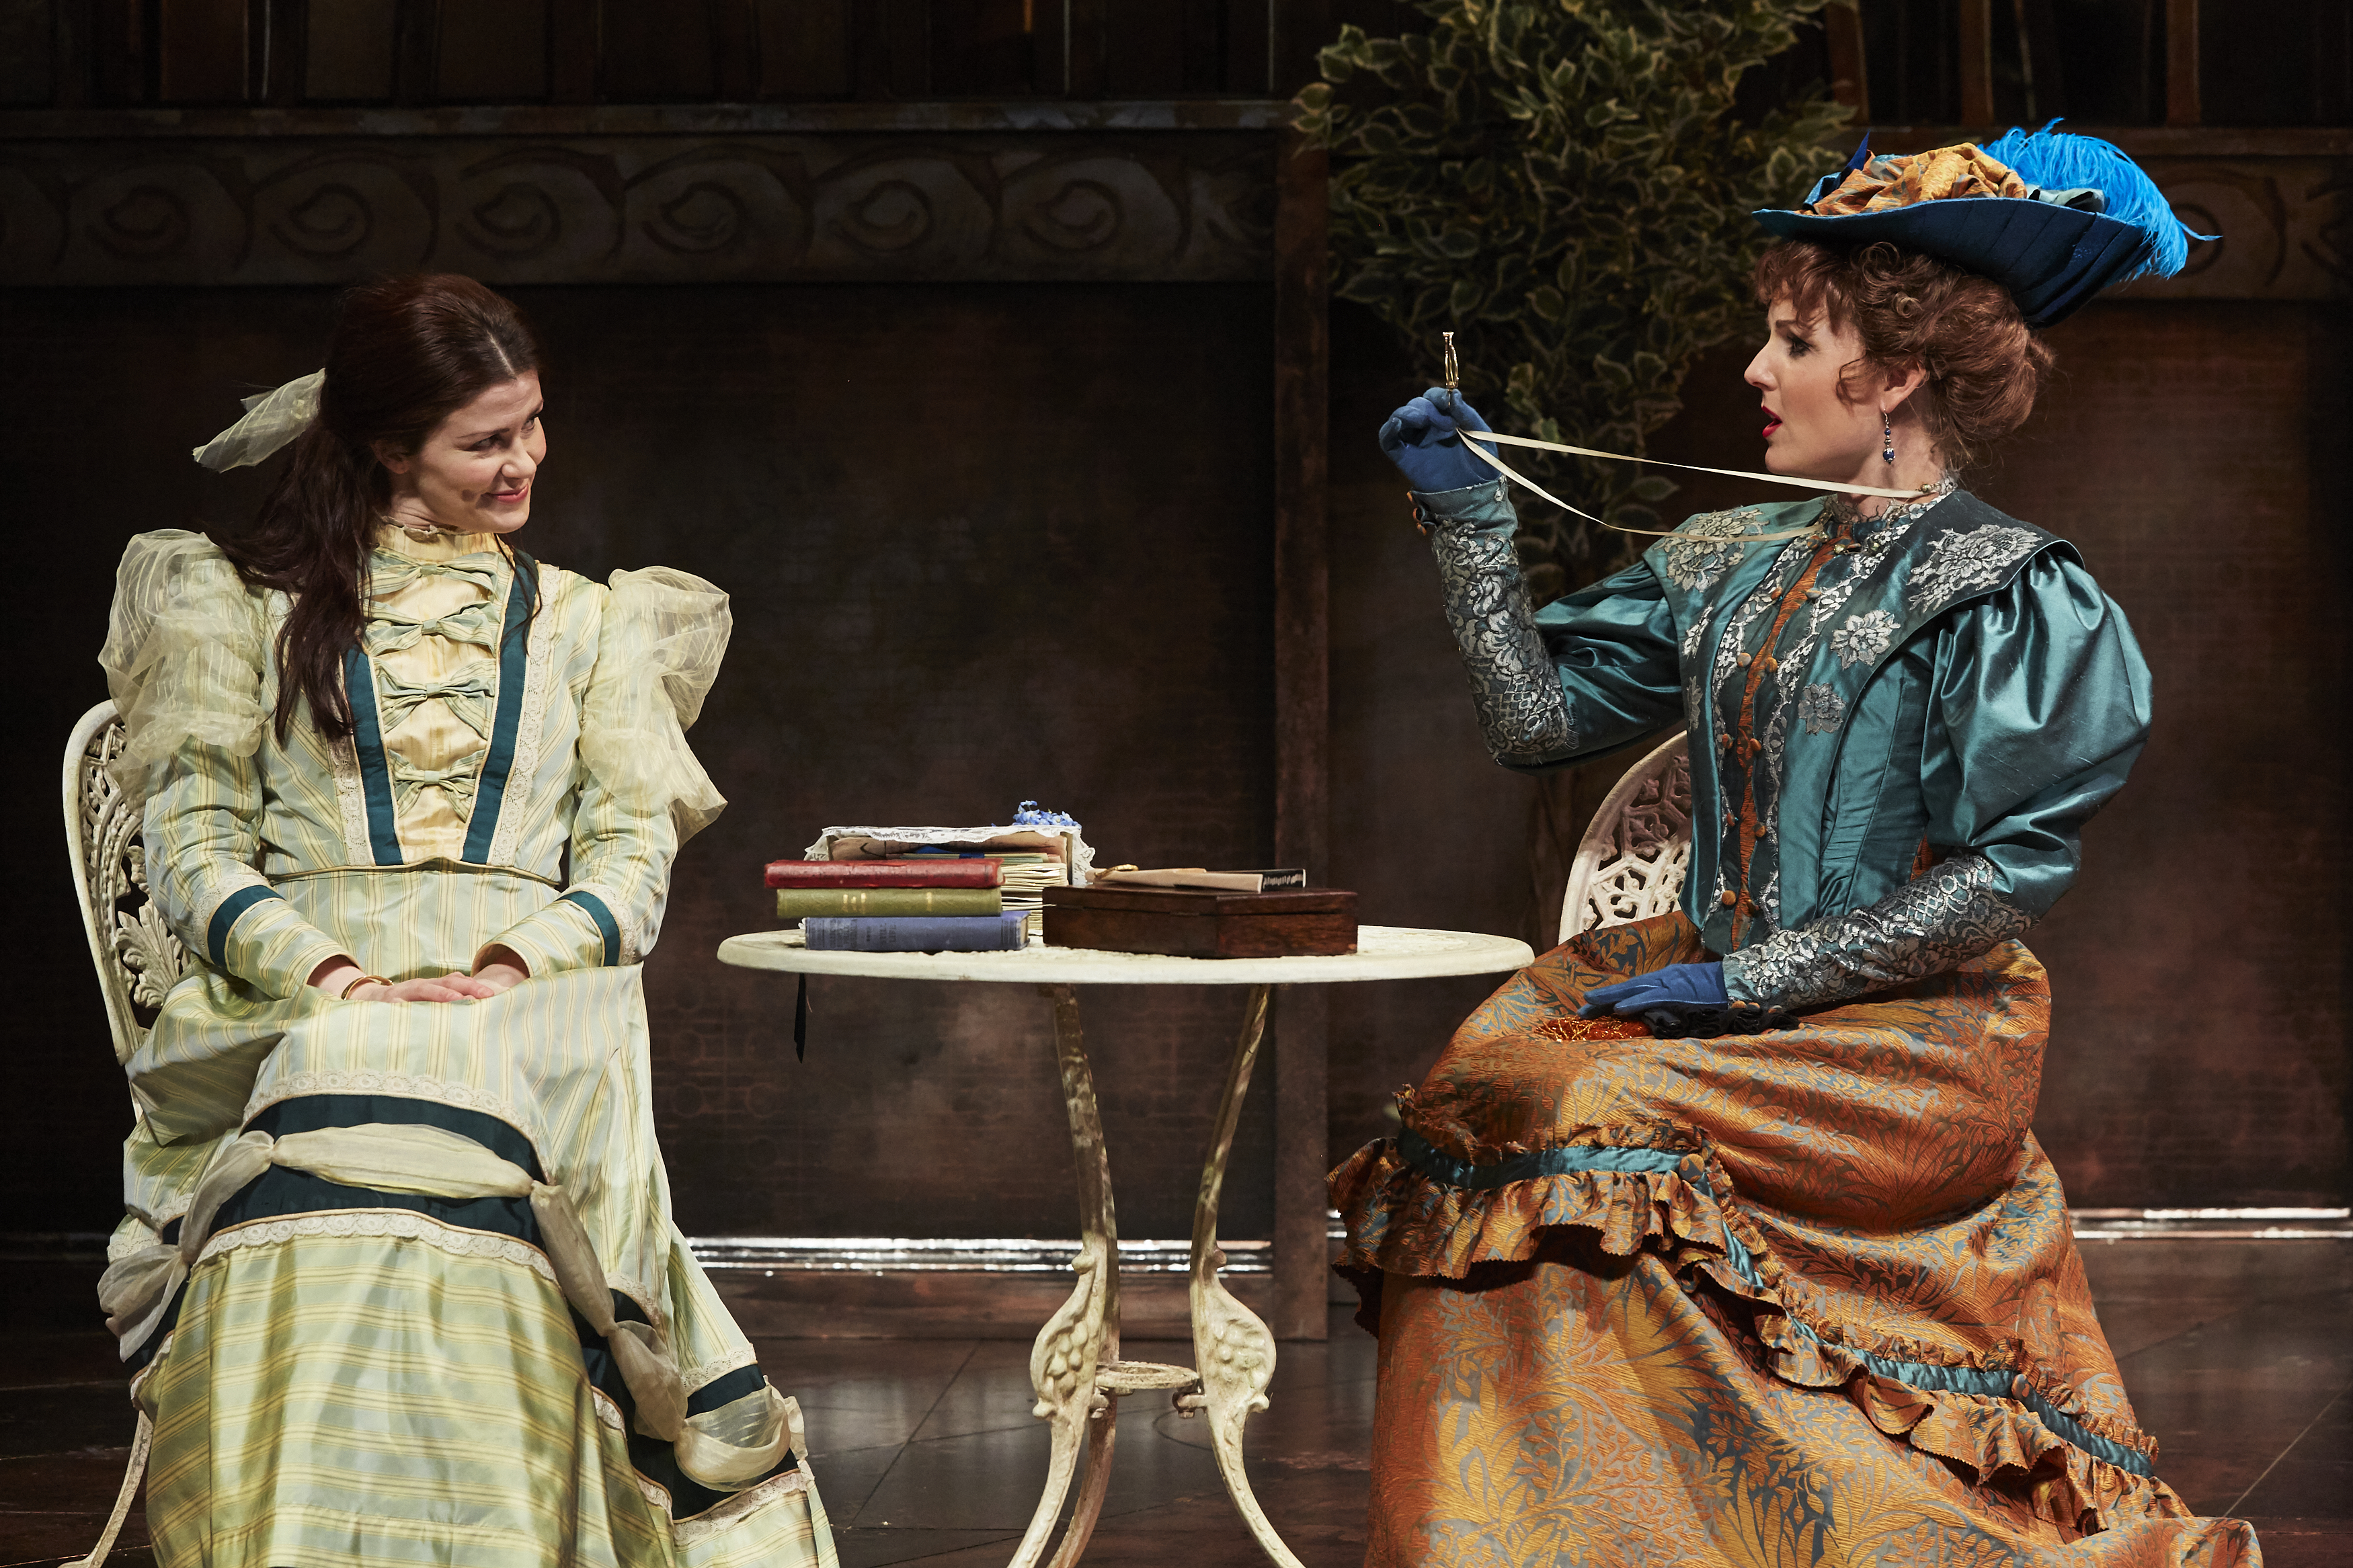 LtoR Louise Coulthard as Cecily & Kerry Ellis as Gwendolen in THE IMPORTANCE OF BEING EARNEST, credit The Other Richard